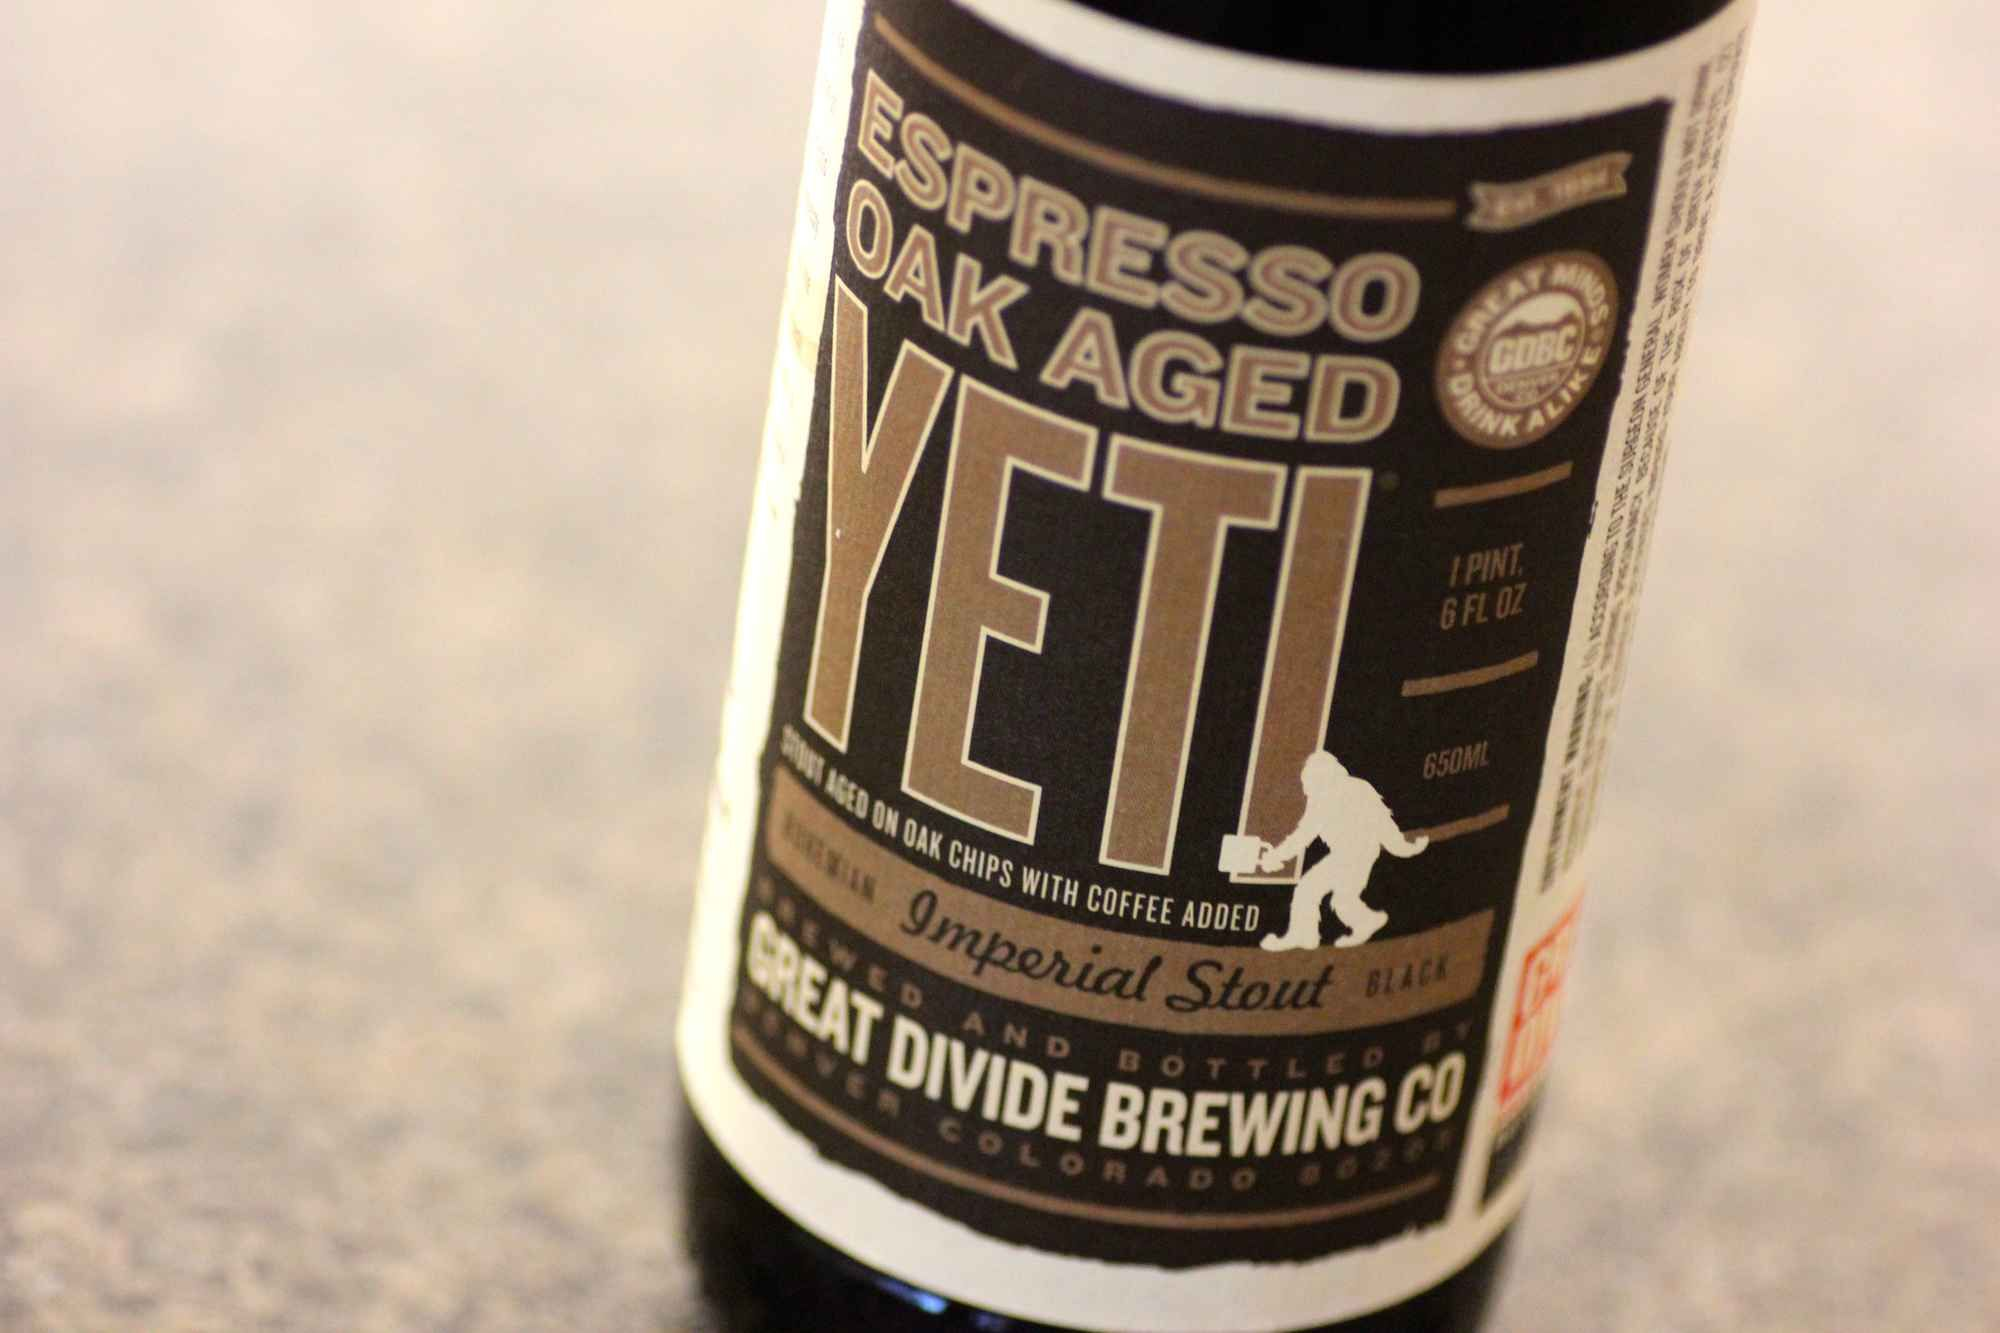 Espresso Oak Aged Yeti, Great Divide Brewing Company